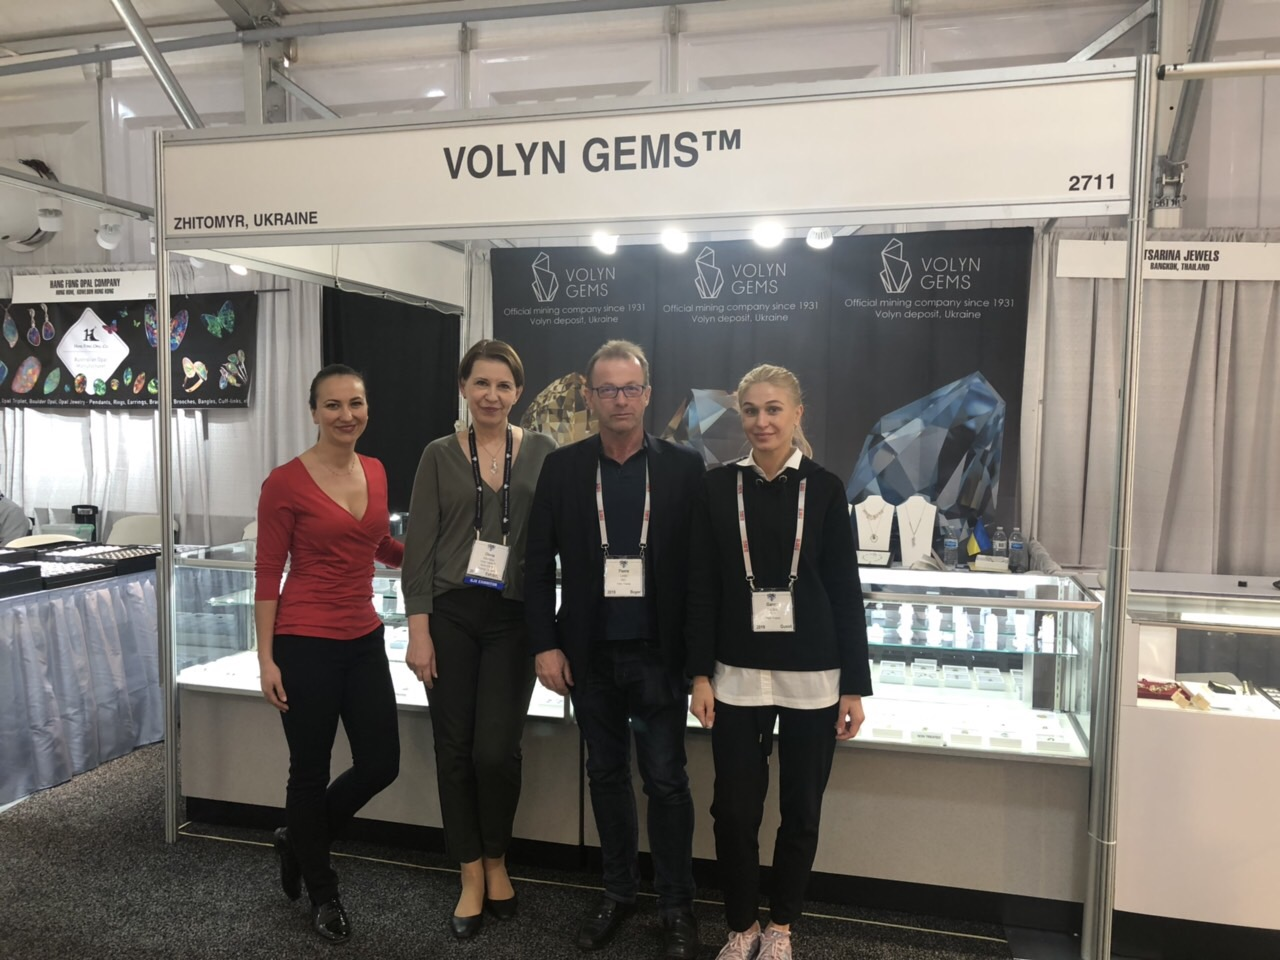 The success of the Volyn minerals at mineralogical exhibitions in the United States.